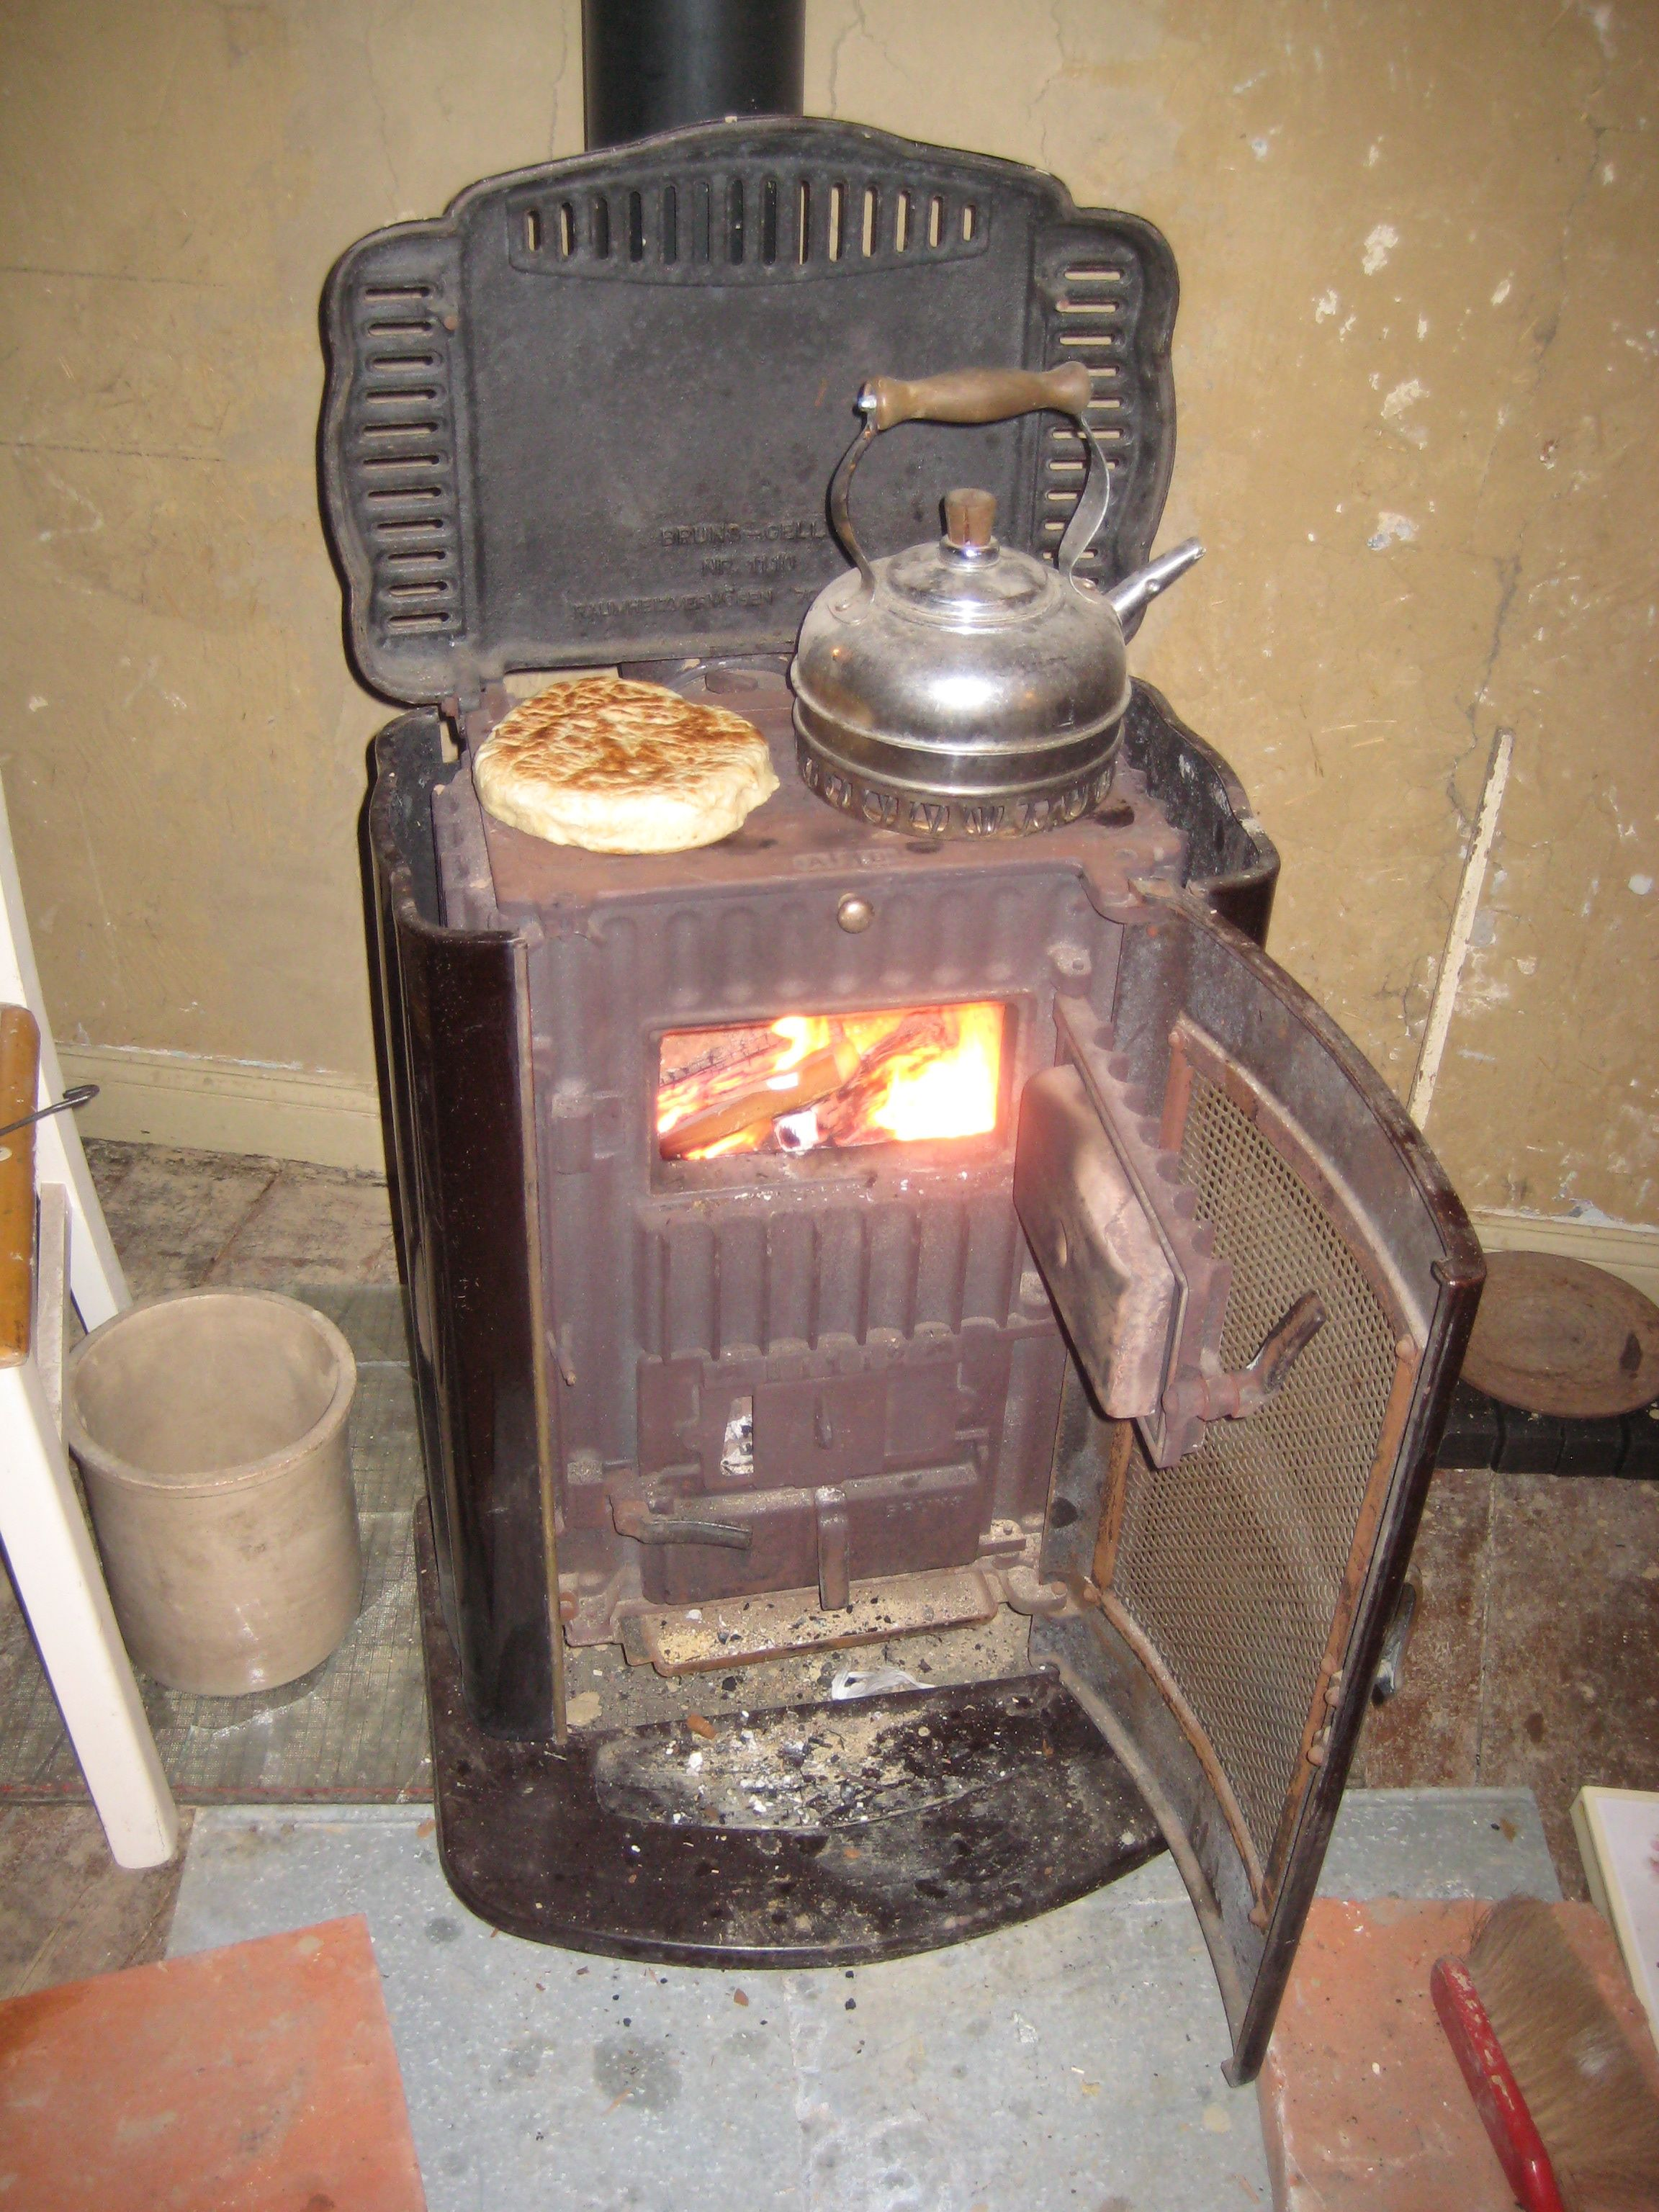 City Mouse Buys A House Wood Stove Cooking Wood Burning Cook Stove Old Stove